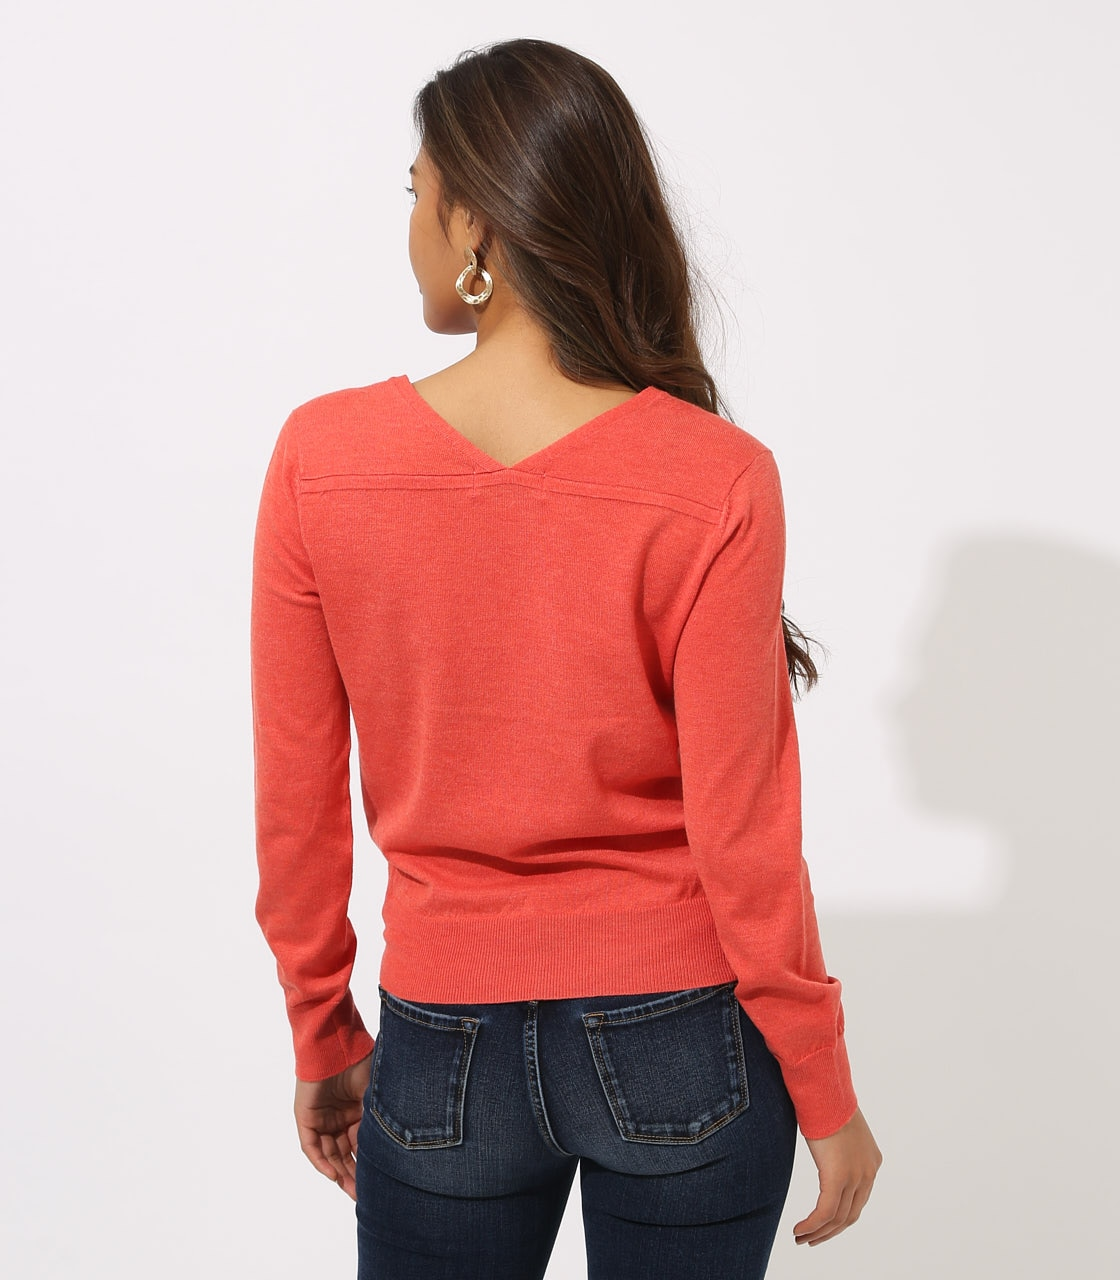 BASIC VNECK KNIT TOPS 詳細画像 L/RED 7